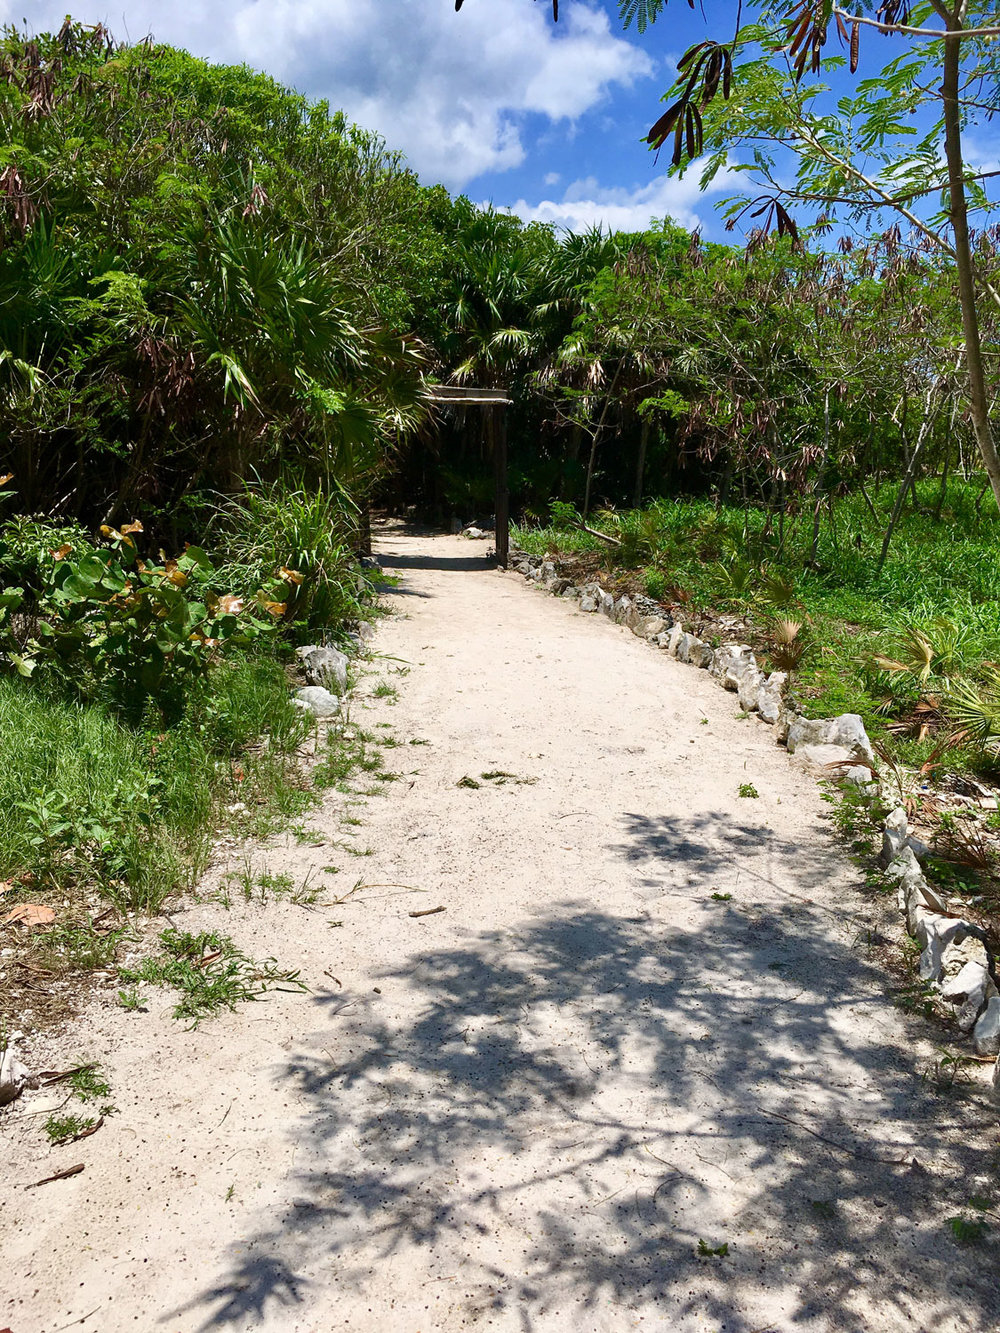 The path to the cenote.